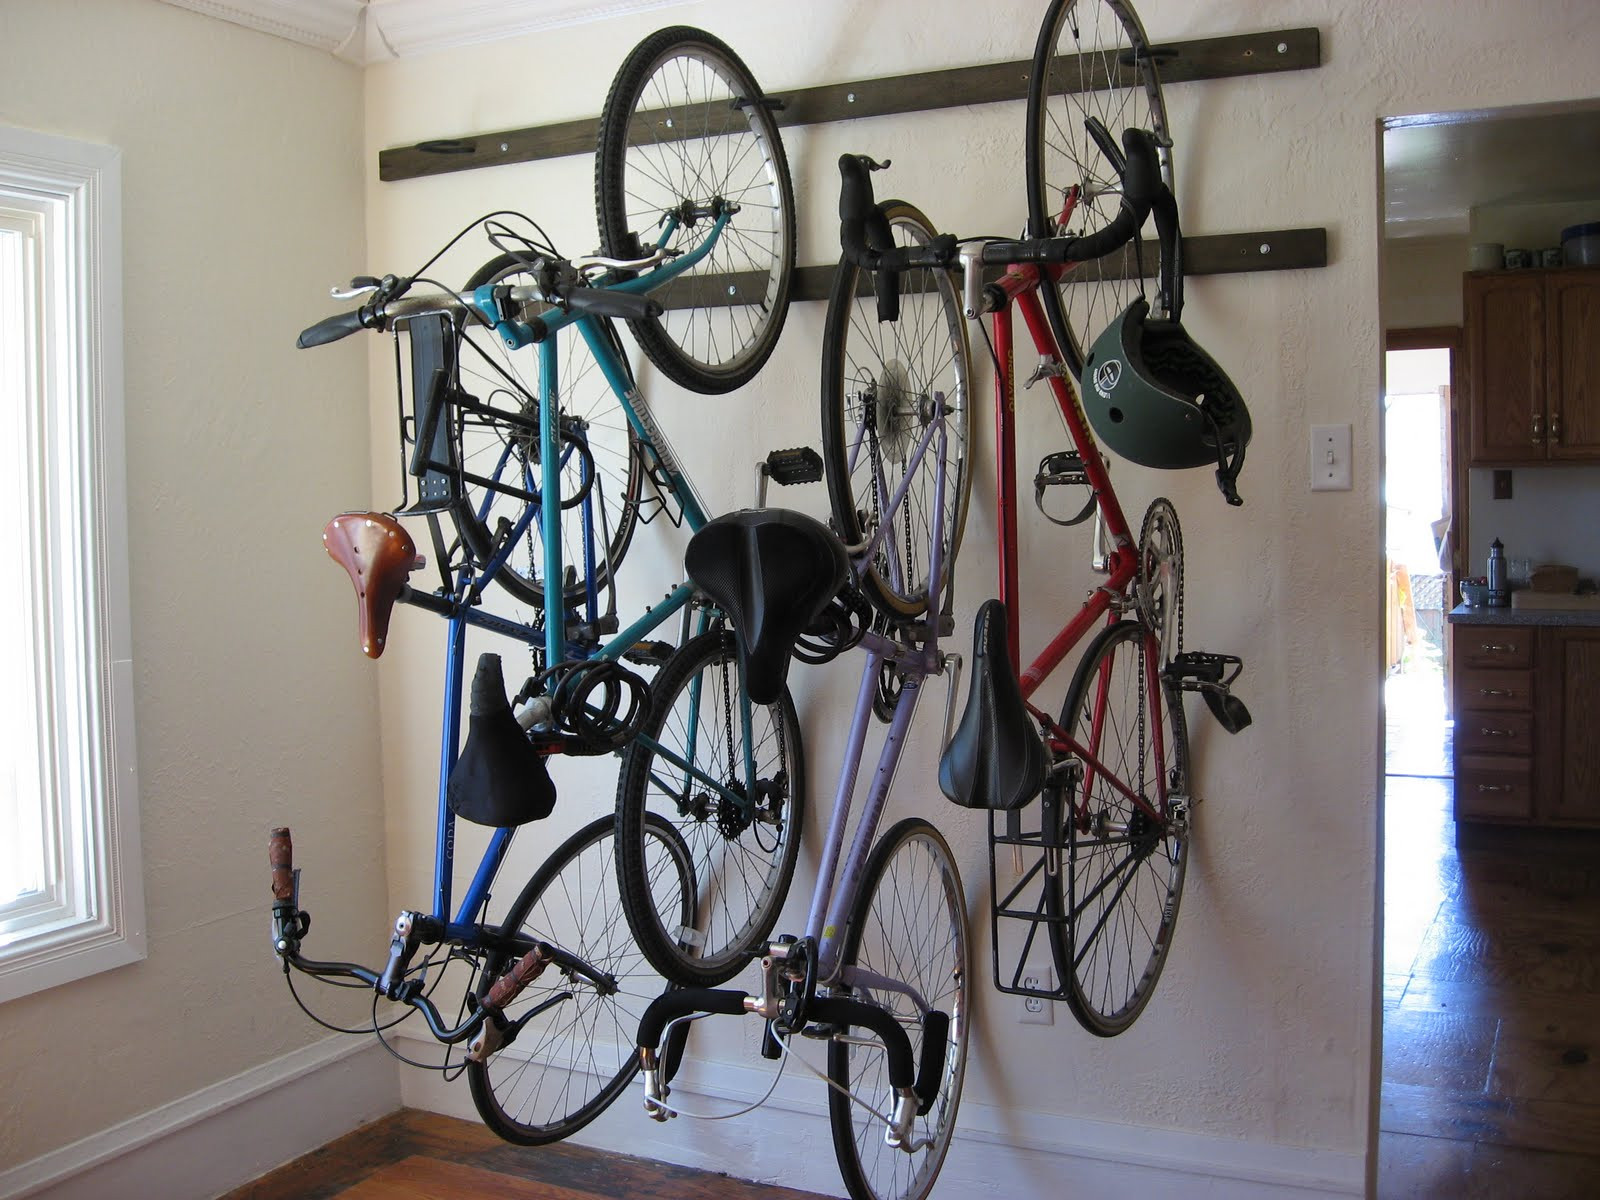 Best ideas about DIY Hanging Bike Rack . Save or Pin Girl on Bike Post 100 My Brand New Homemade Wall Now.